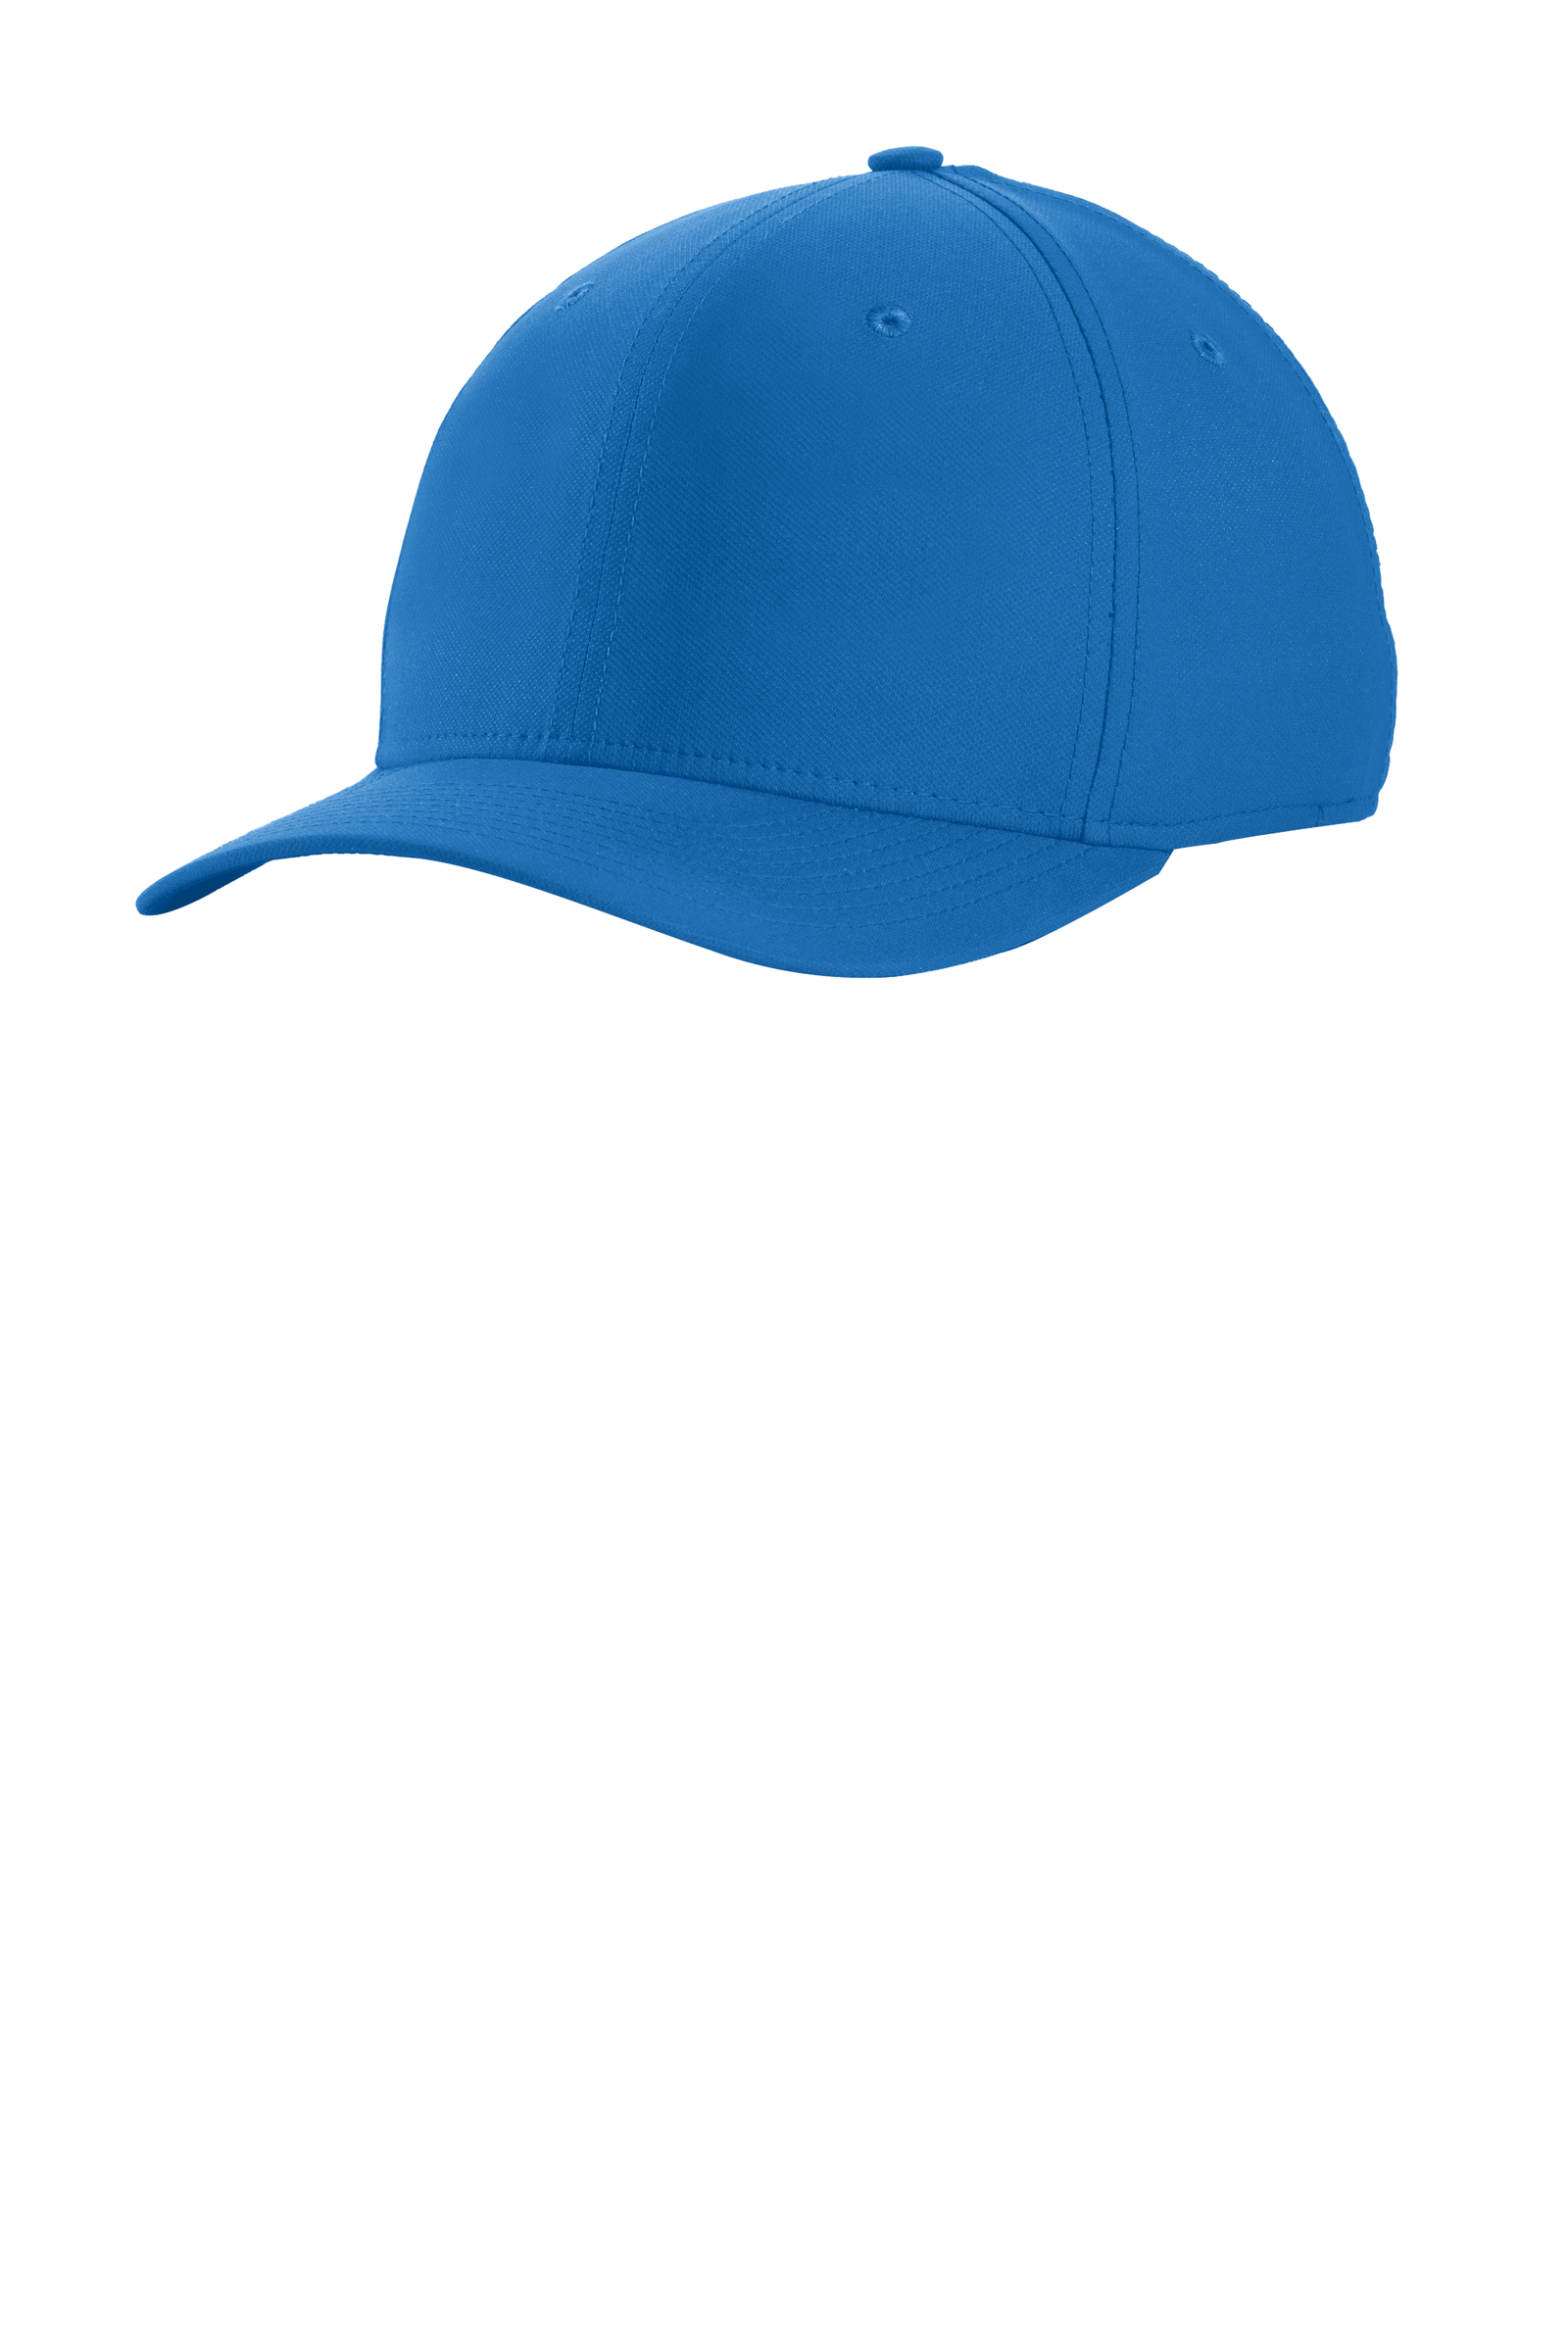 Nike Embroidered Dri-FIT Classic 99 Hat